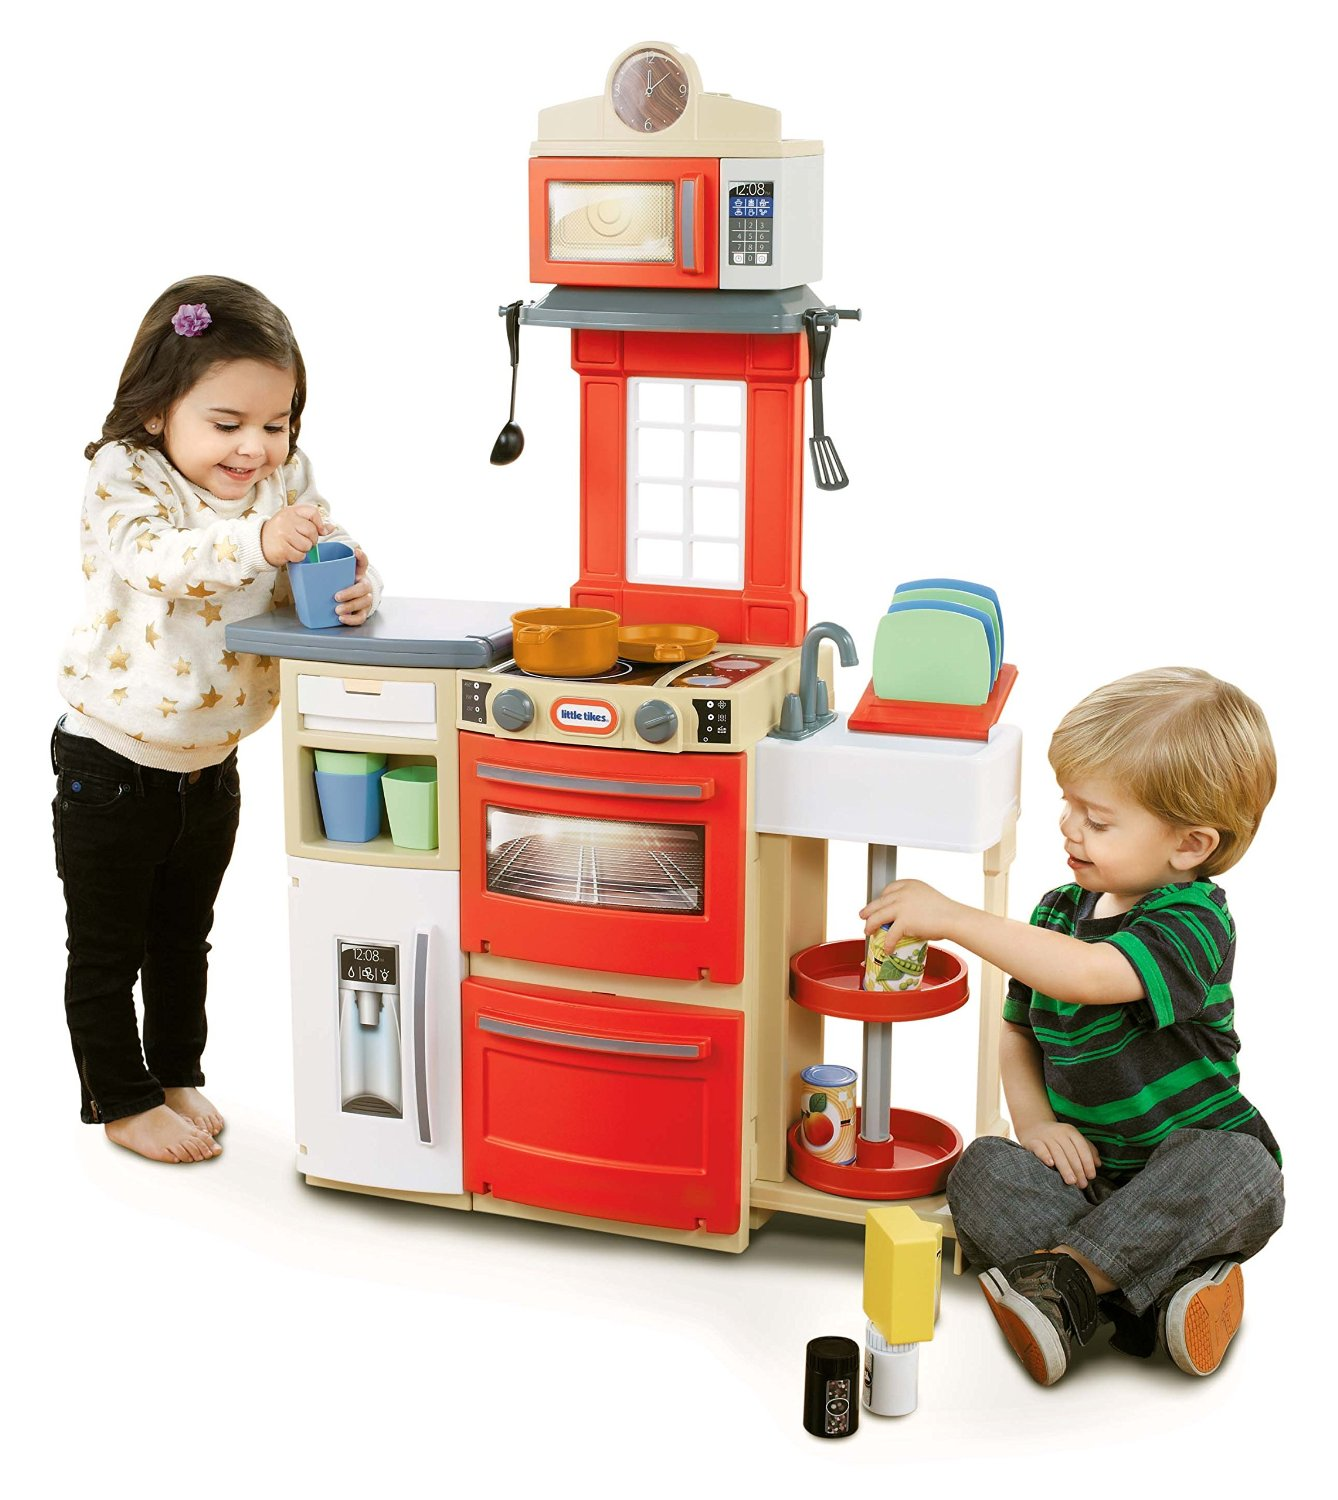 Little Tikes Cook 'n Store Kitchen Playset Only $44.37! (Reg. $70!)